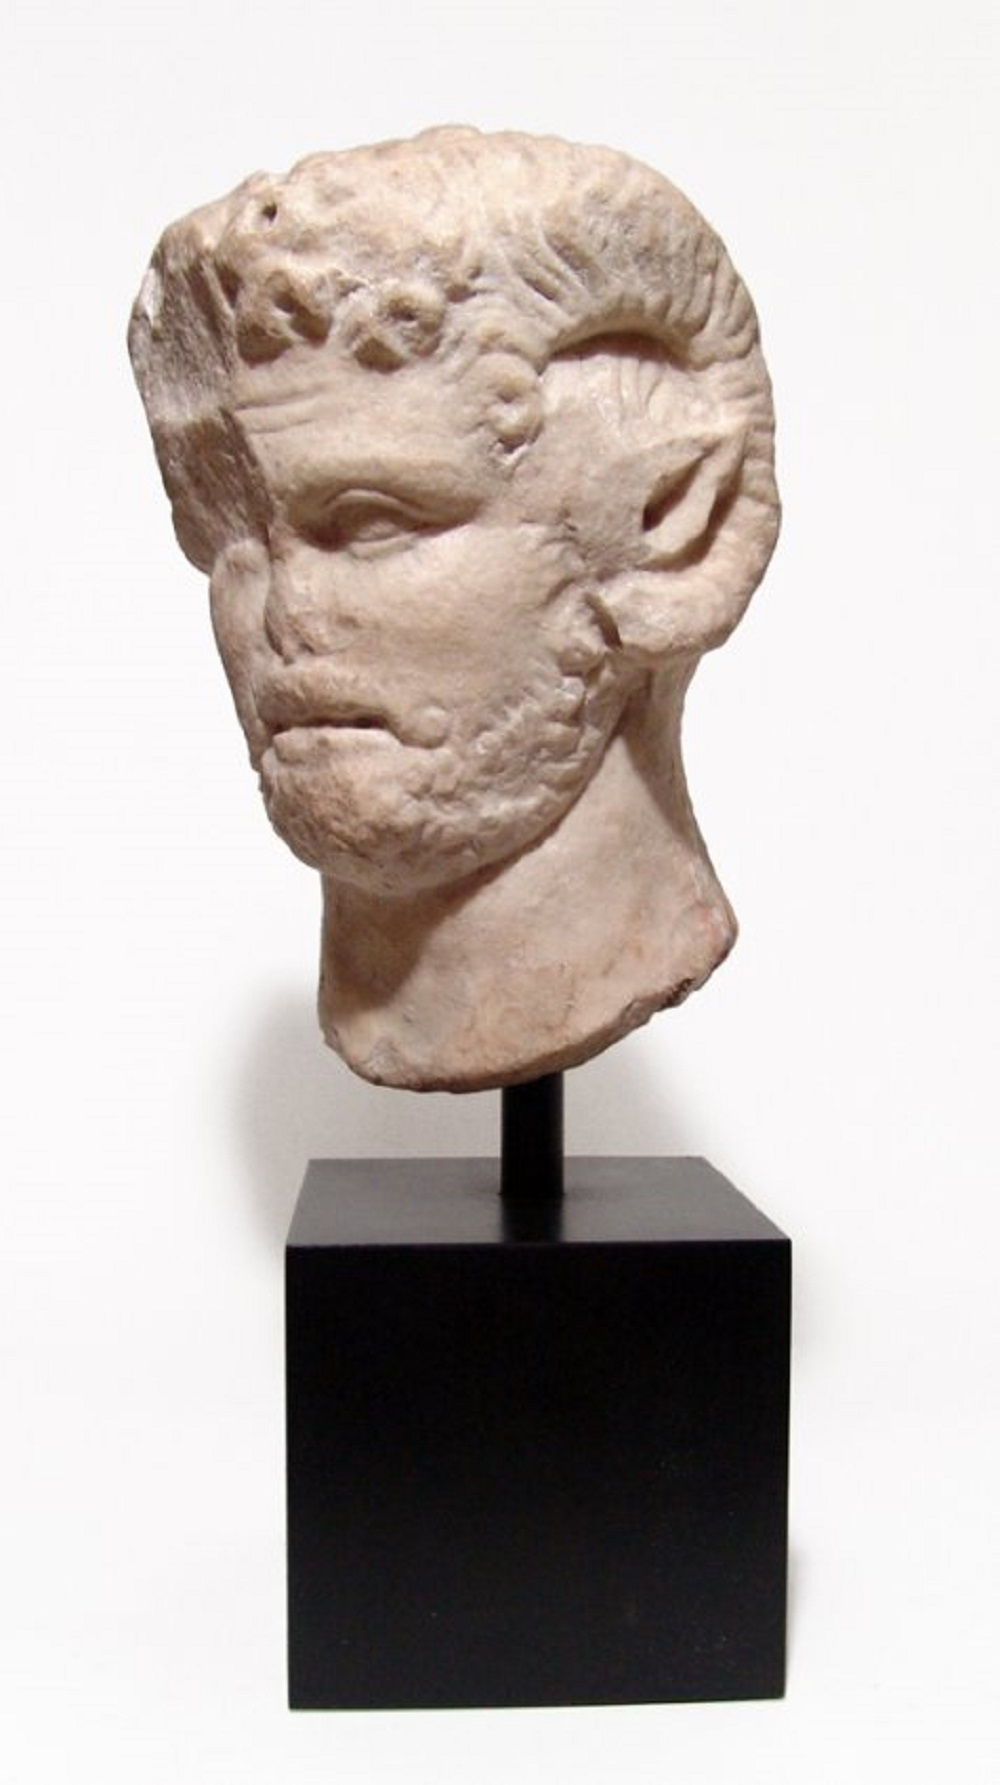 Graeco-Roman marble head of a satyr, with attributes of Zeus-Ammon, circa 1st or 2nd century AD, 9 inches tall and mounted on a heavy square base (est. $18,000-$25,000).